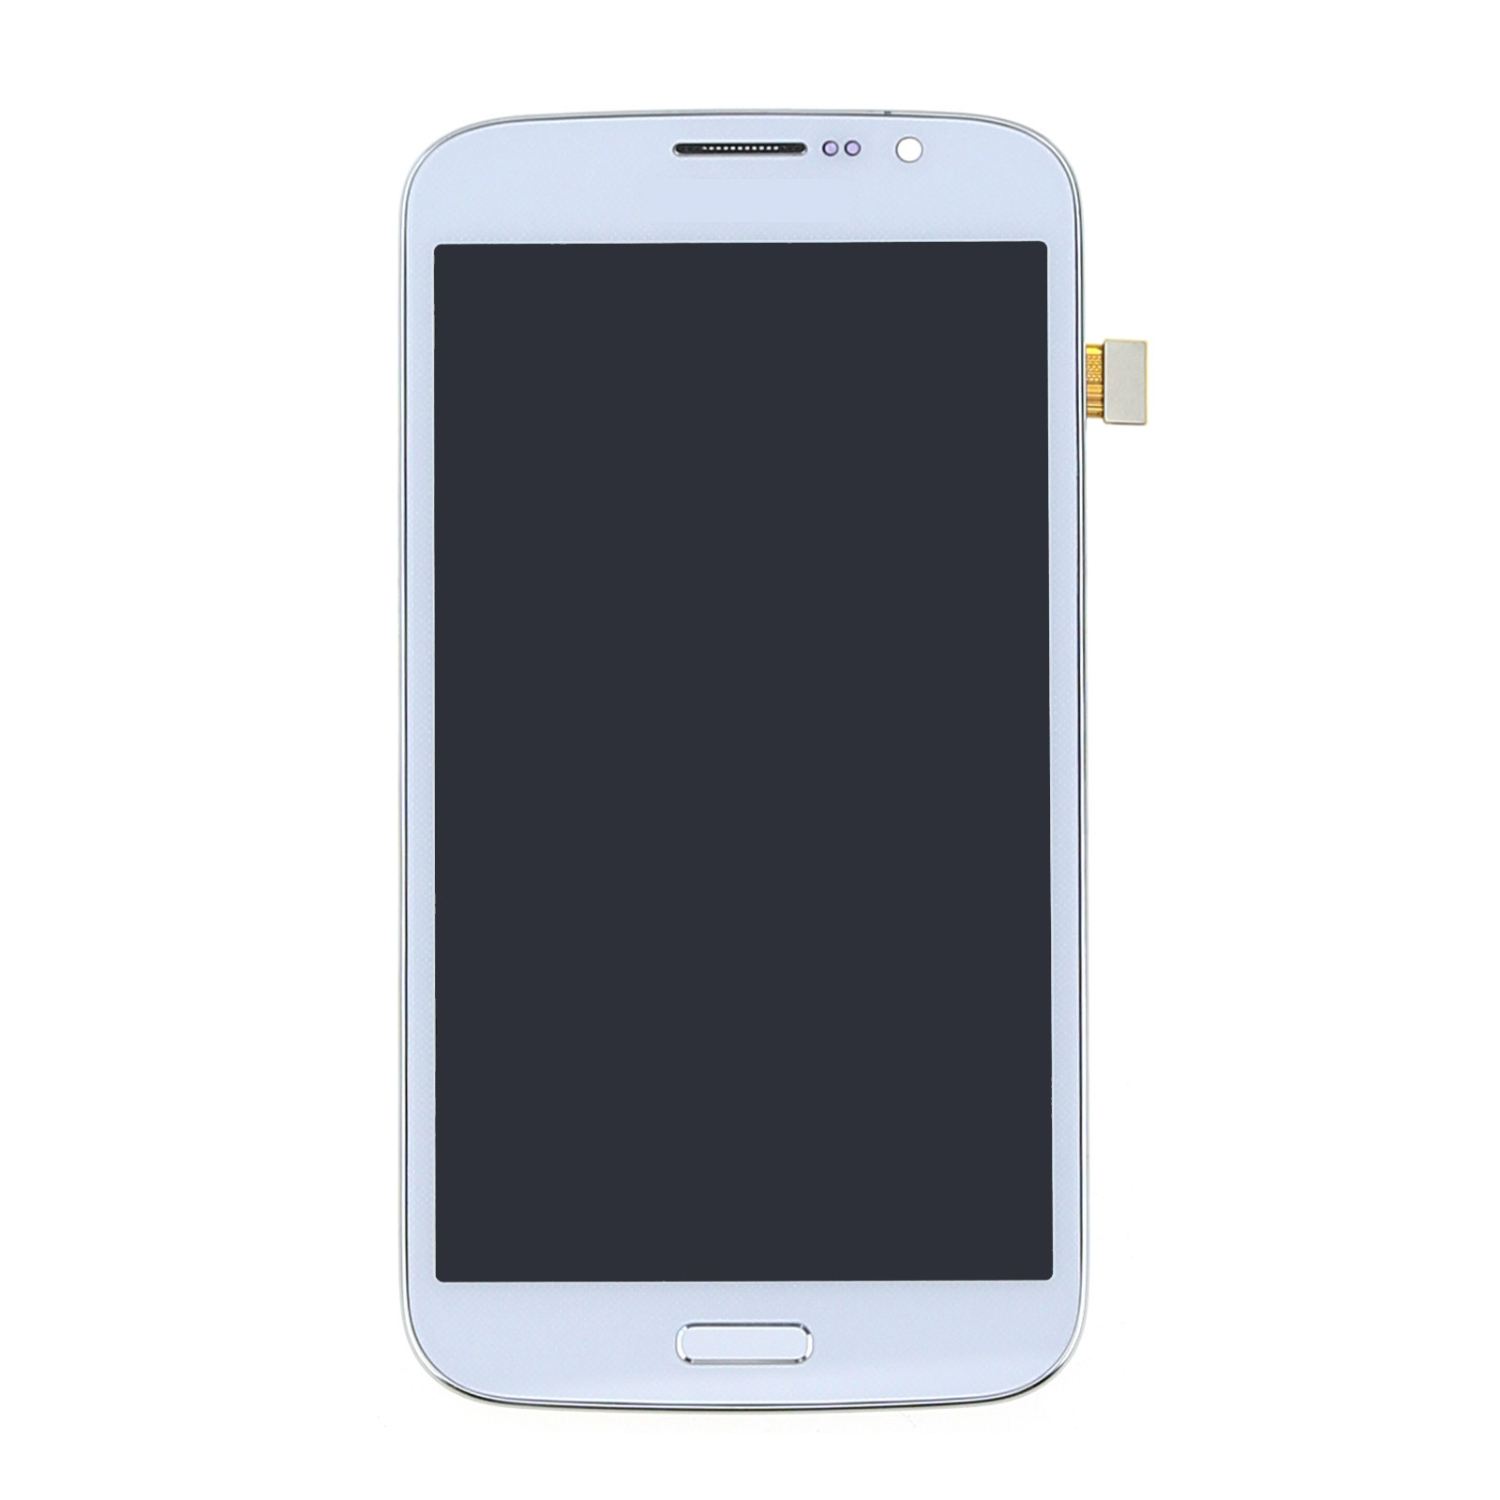 White For Samsung Galaxy Mega 5.8 i9150 i9152 LCD Screen ...